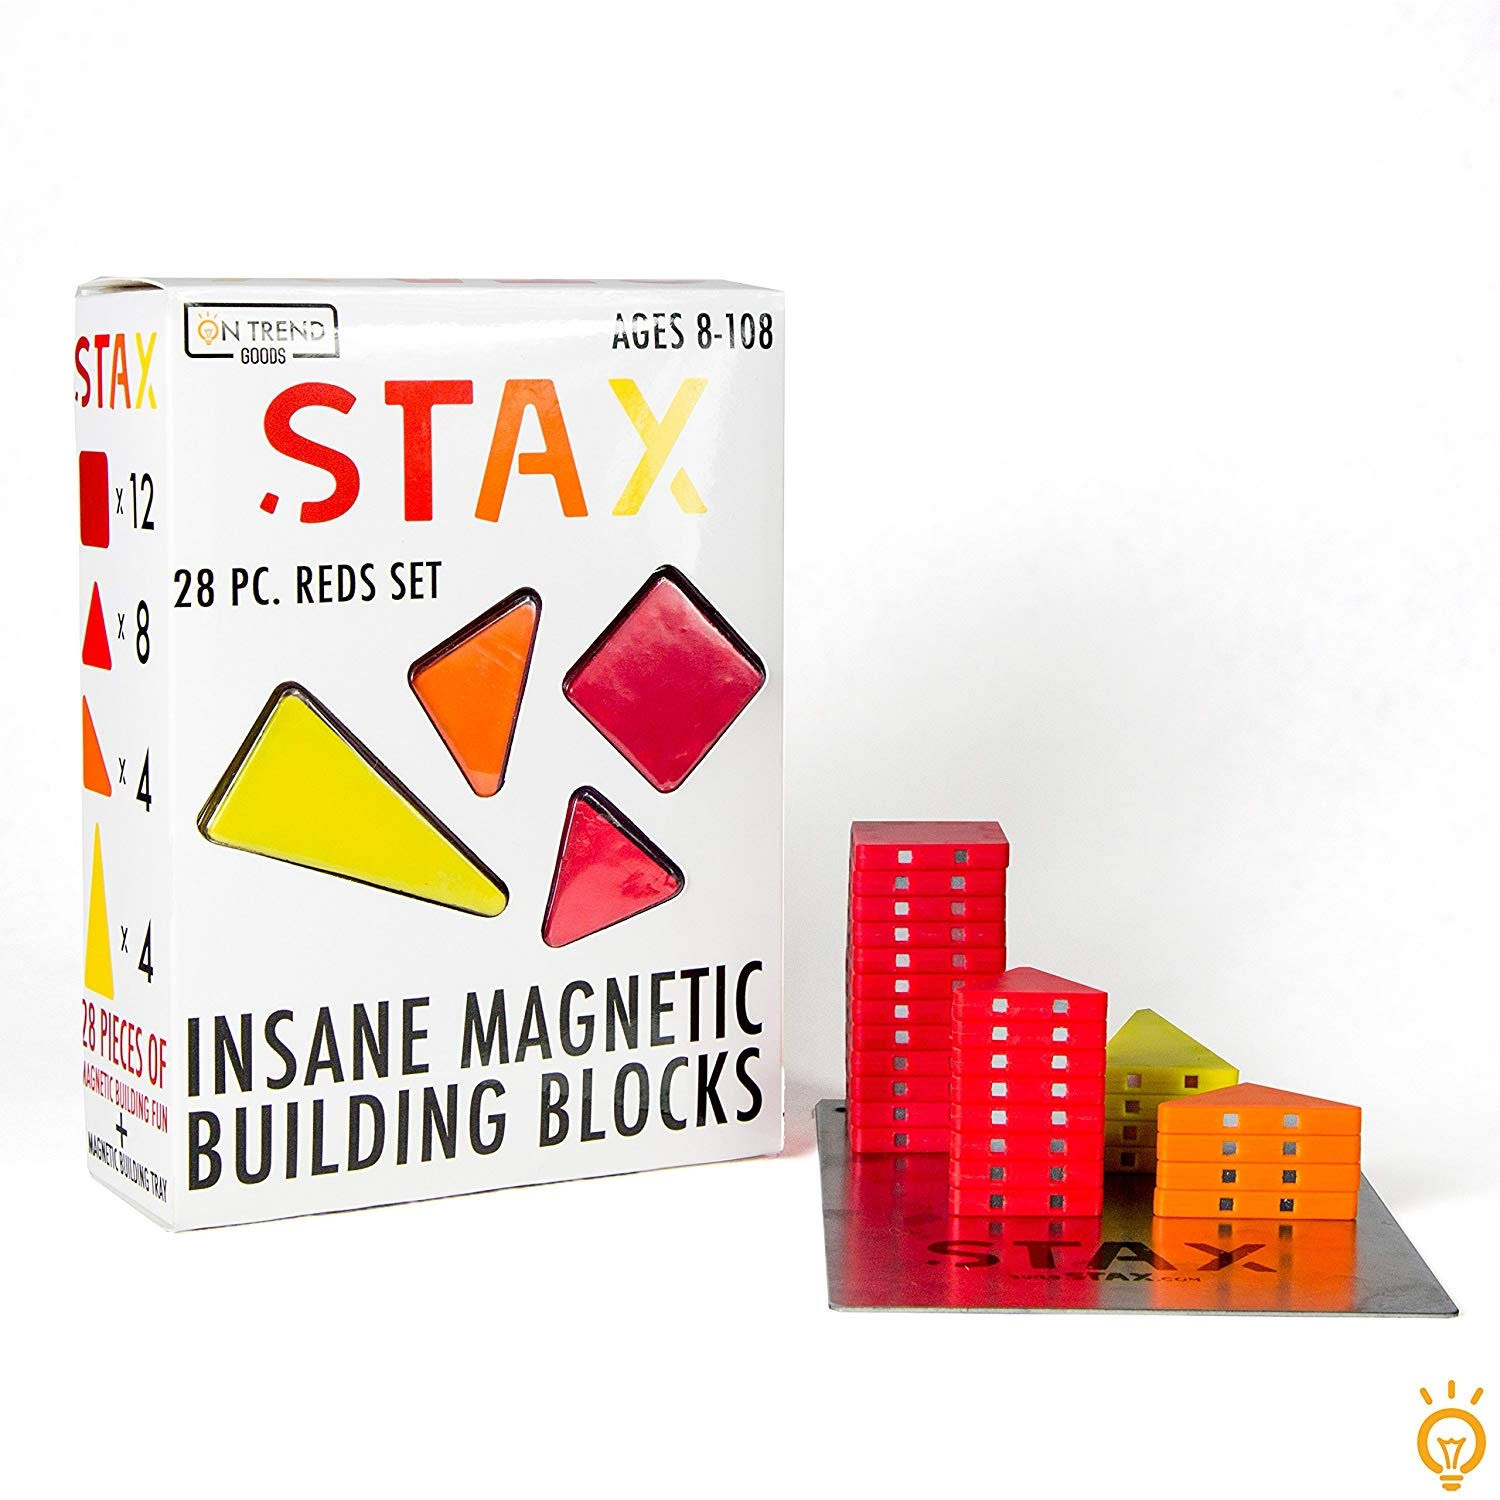 Stax 28pc Insane Magnetic Building Block Set (Reds )